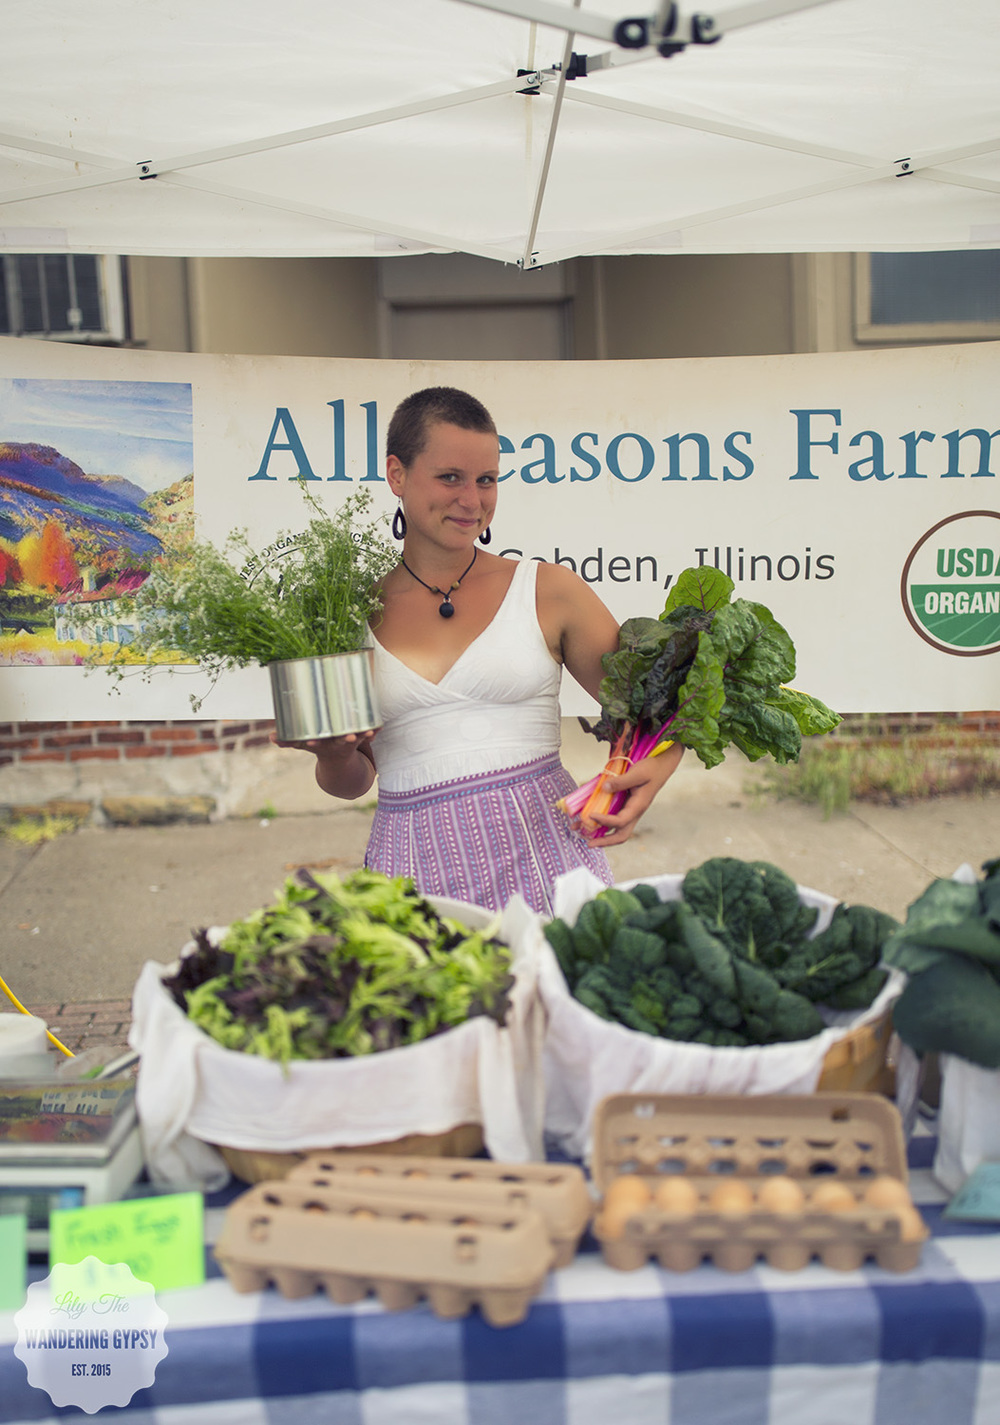 All Seasons Farm - All Local, All Organic